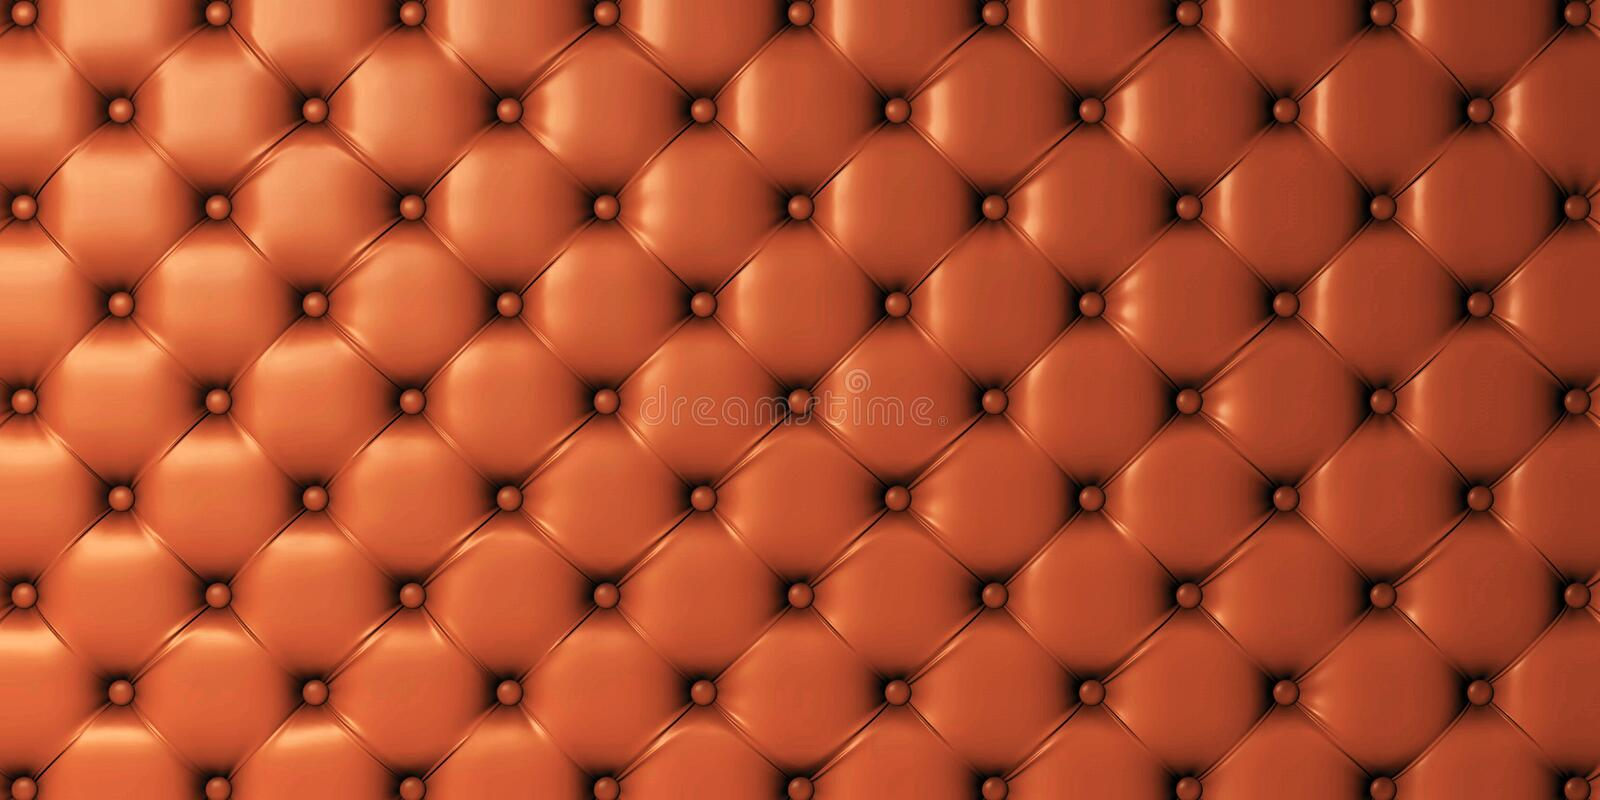 3d picture of genuine leather upholstery royalty free illustration